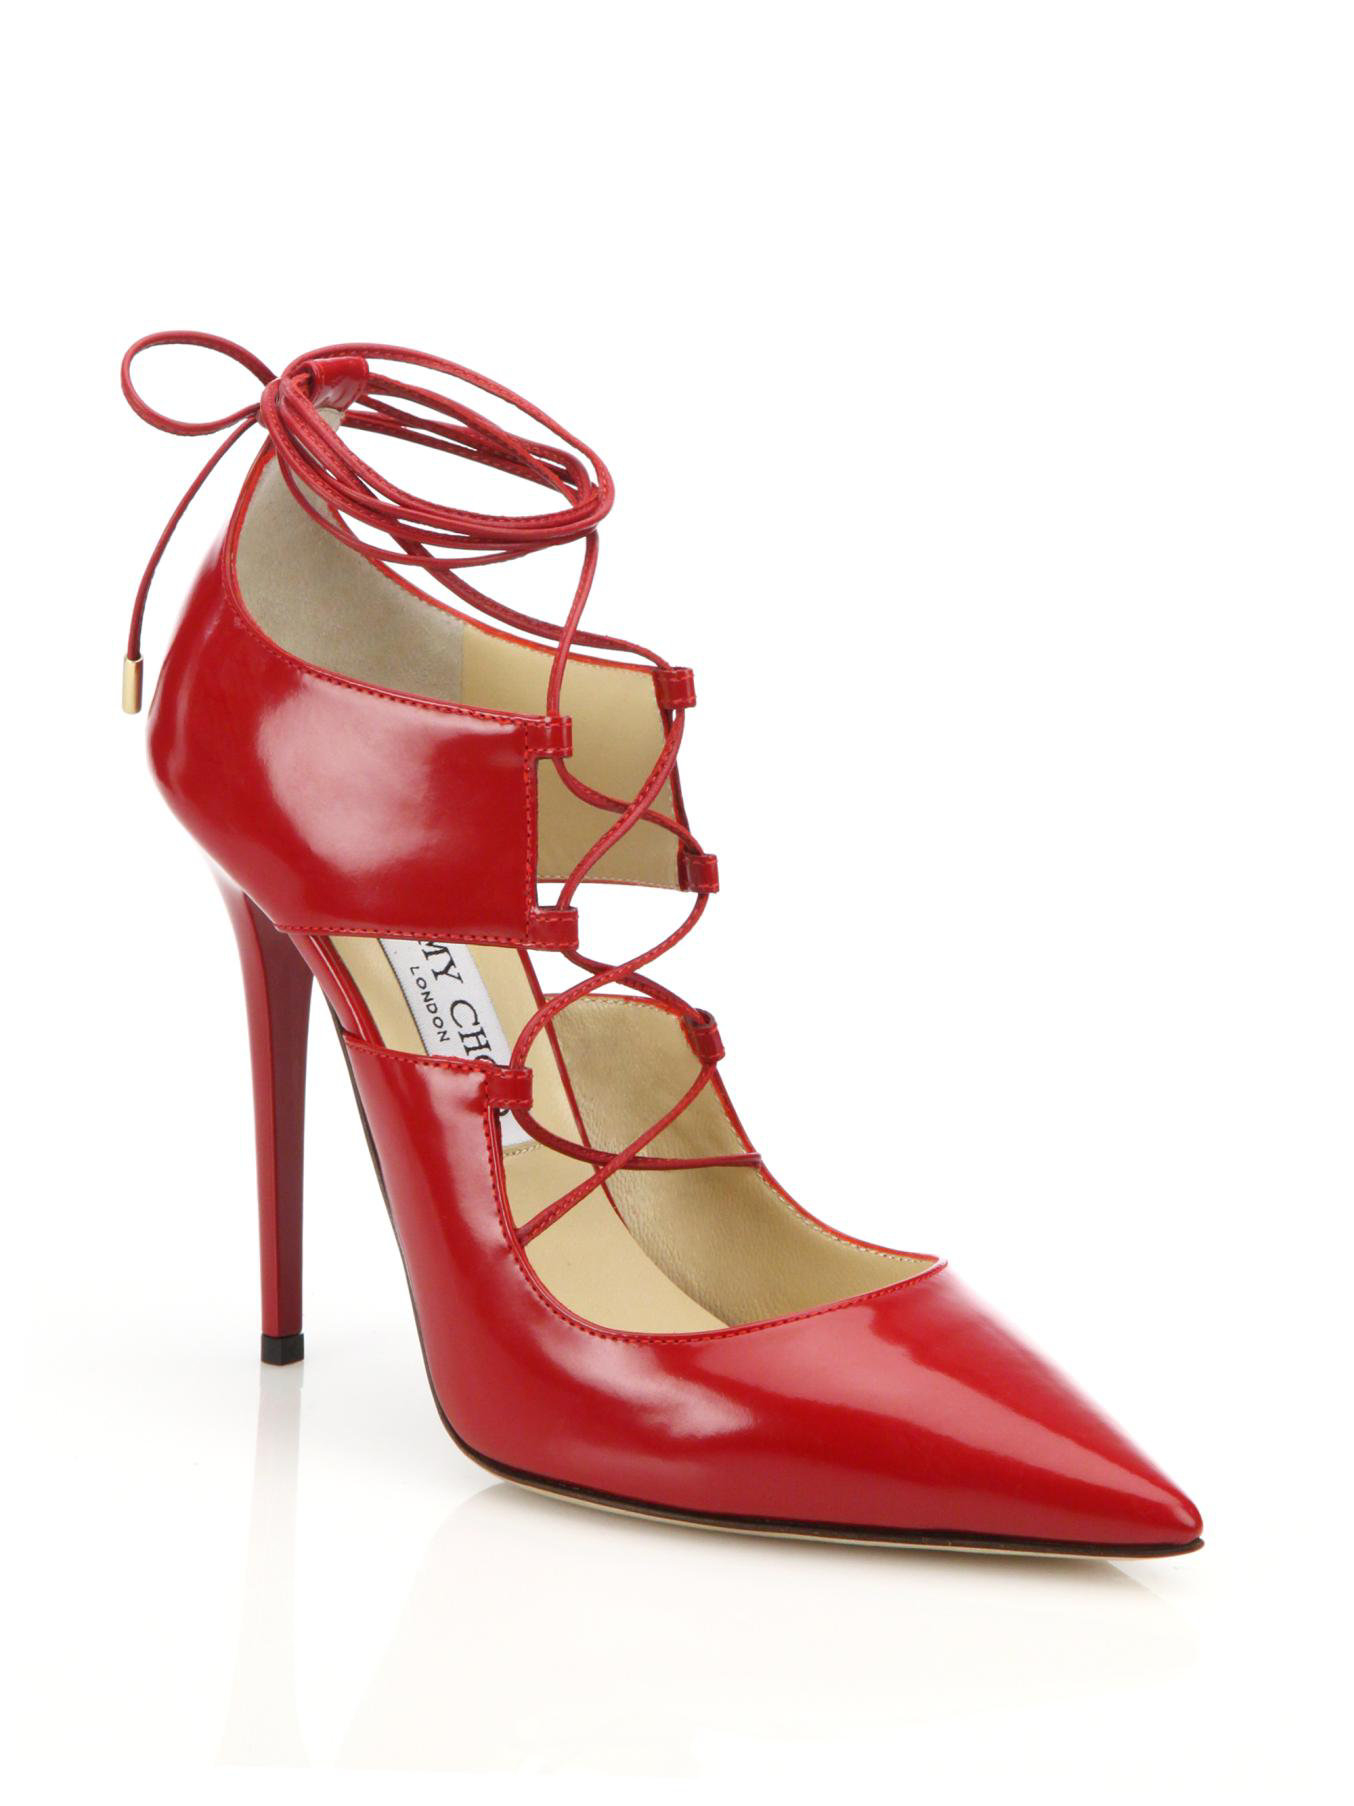 a62a265deabd Jimmy choo Hoops Lace-up Leather Pumps in Red